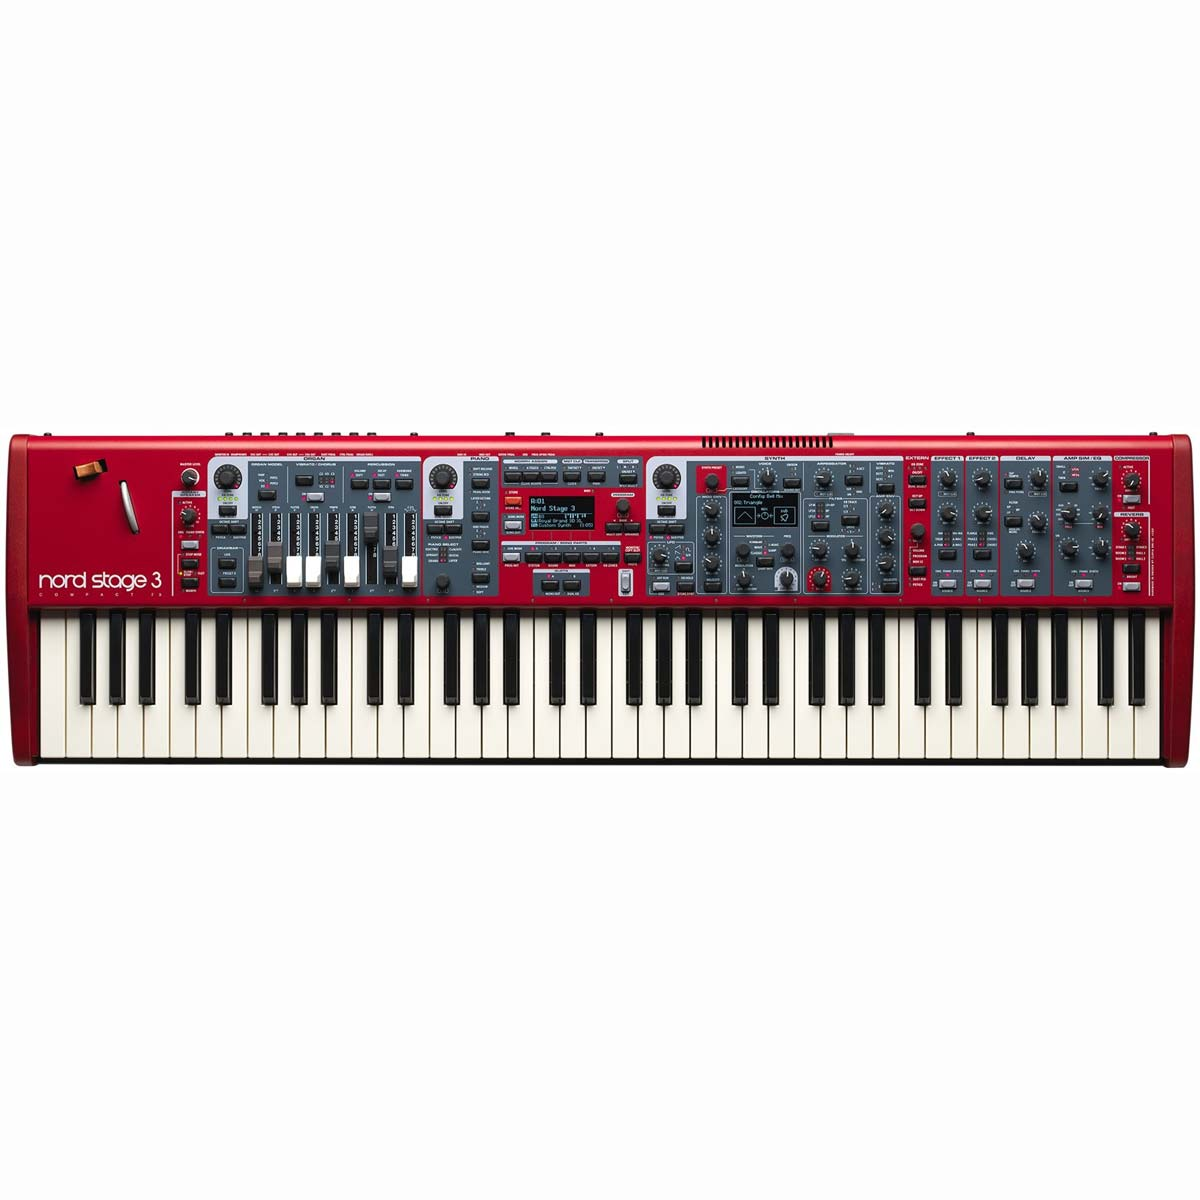 Nord Stage 3 COMPACT stagepiano